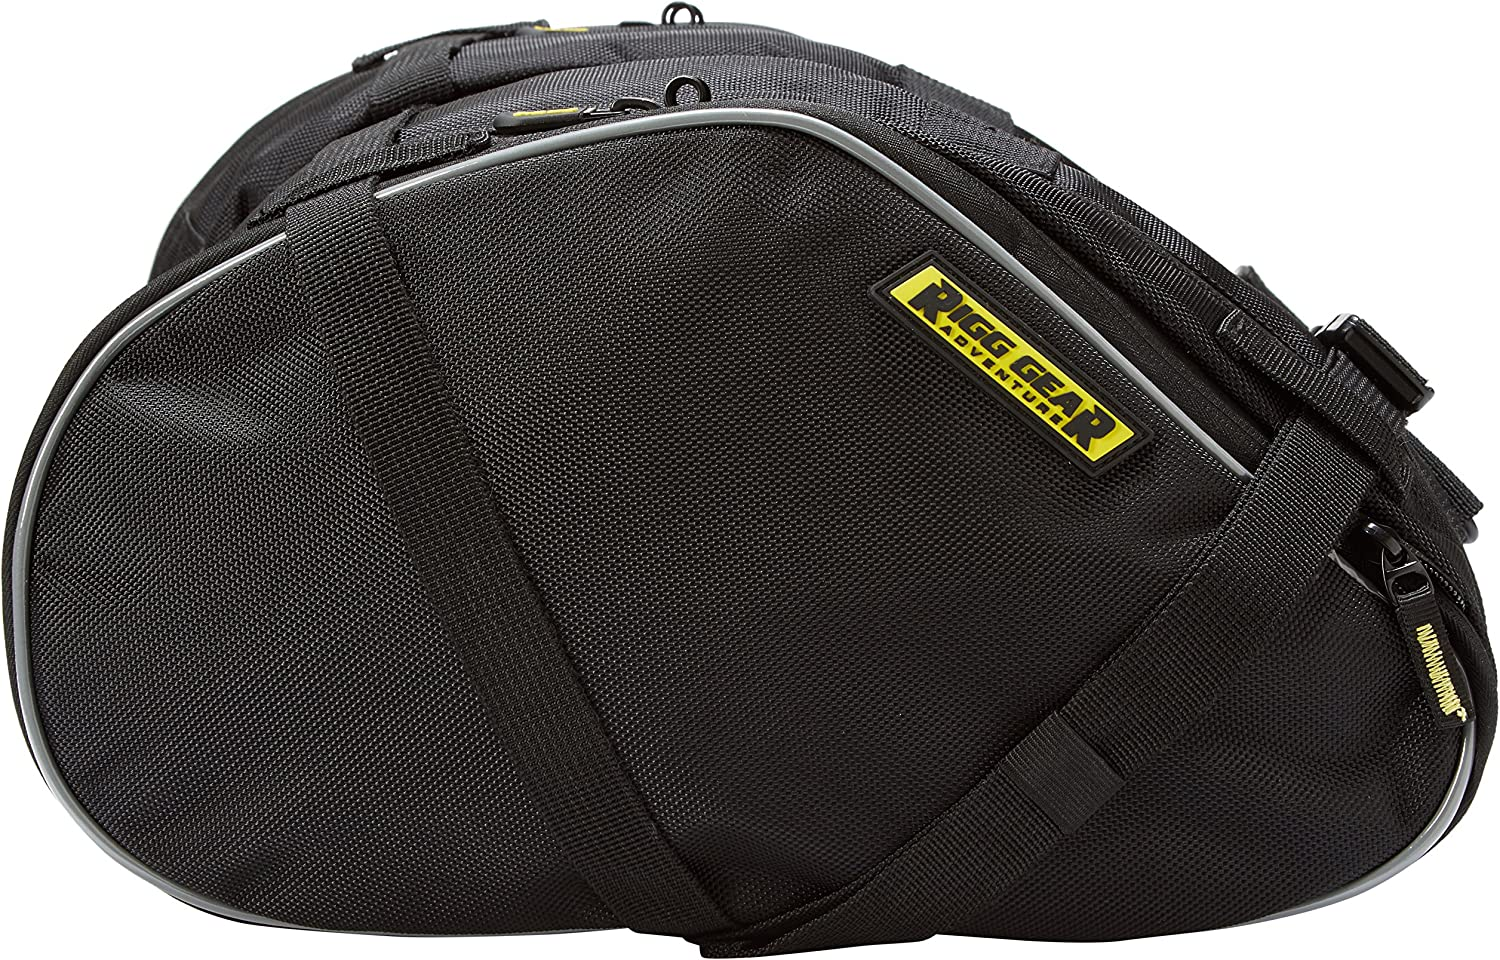 Nelson-Rigg Black RG-020 Be super welcome Dual Sport Saddlebags One Size Enduro Tampa Mall